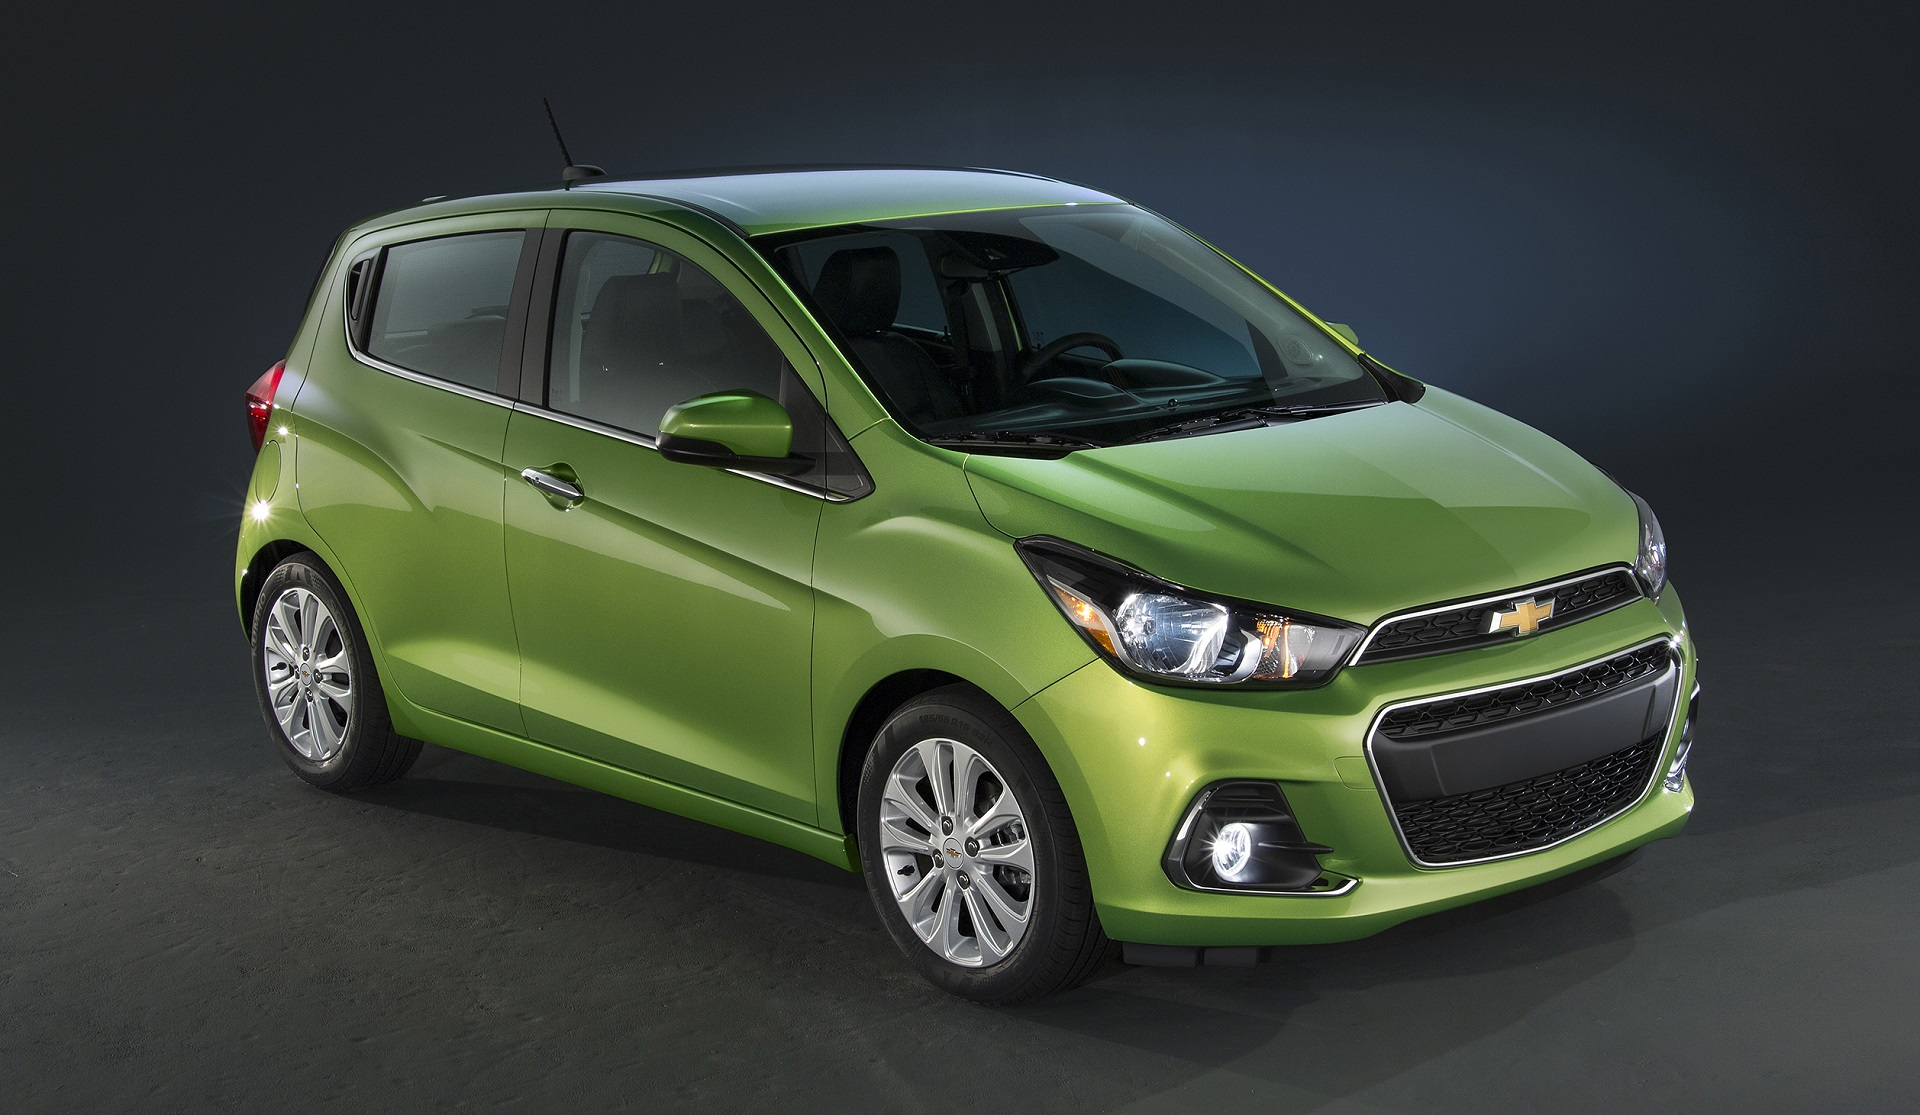 2017 Chevrolet Spark Chevy Styling Review The Car